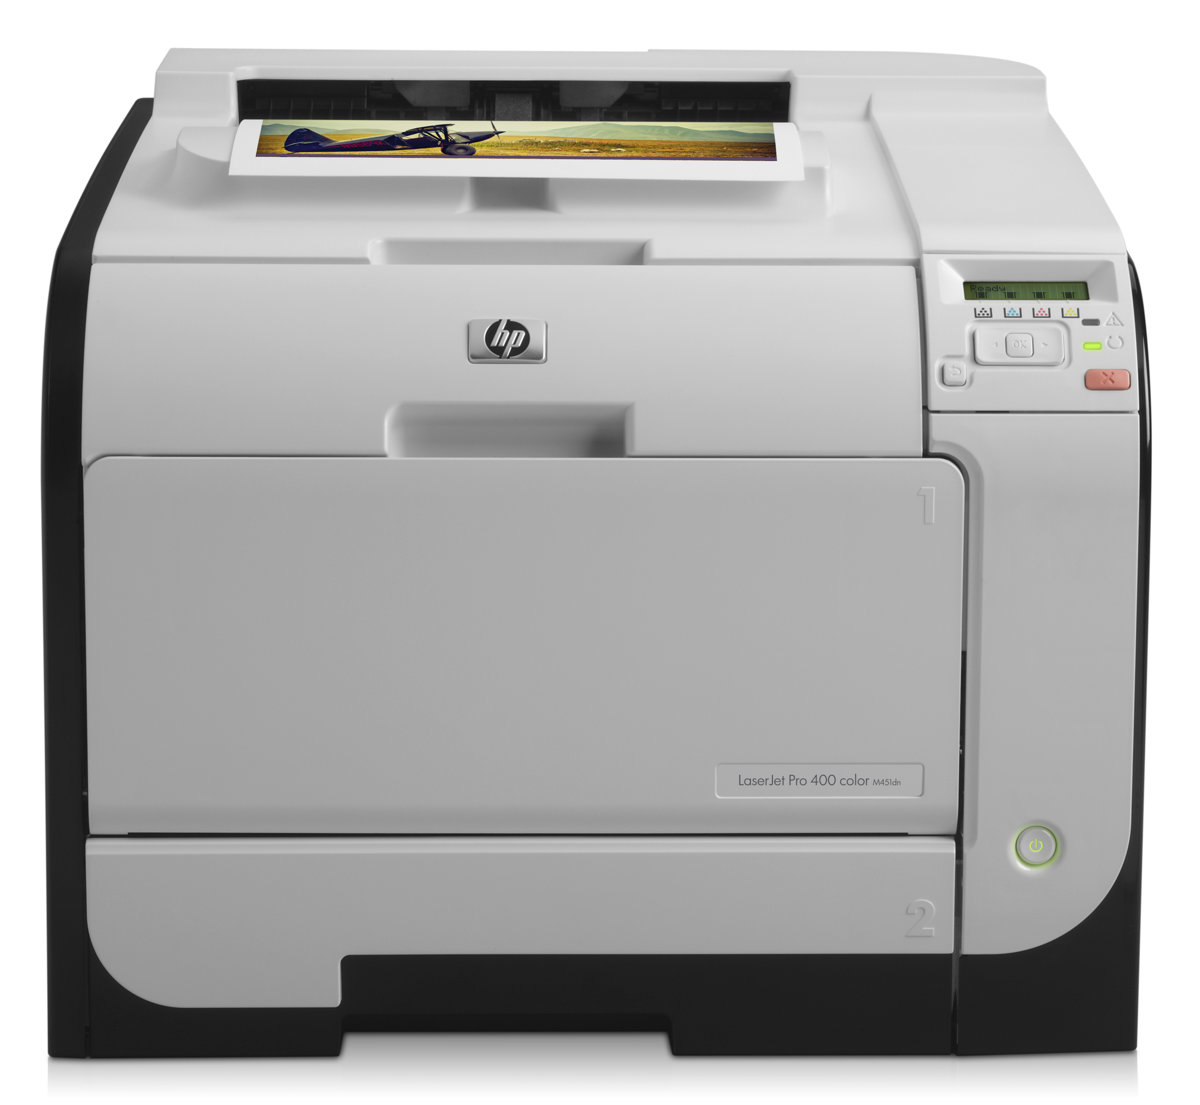 Принтер HP LaserJet Pro 400 color Printer M451dn